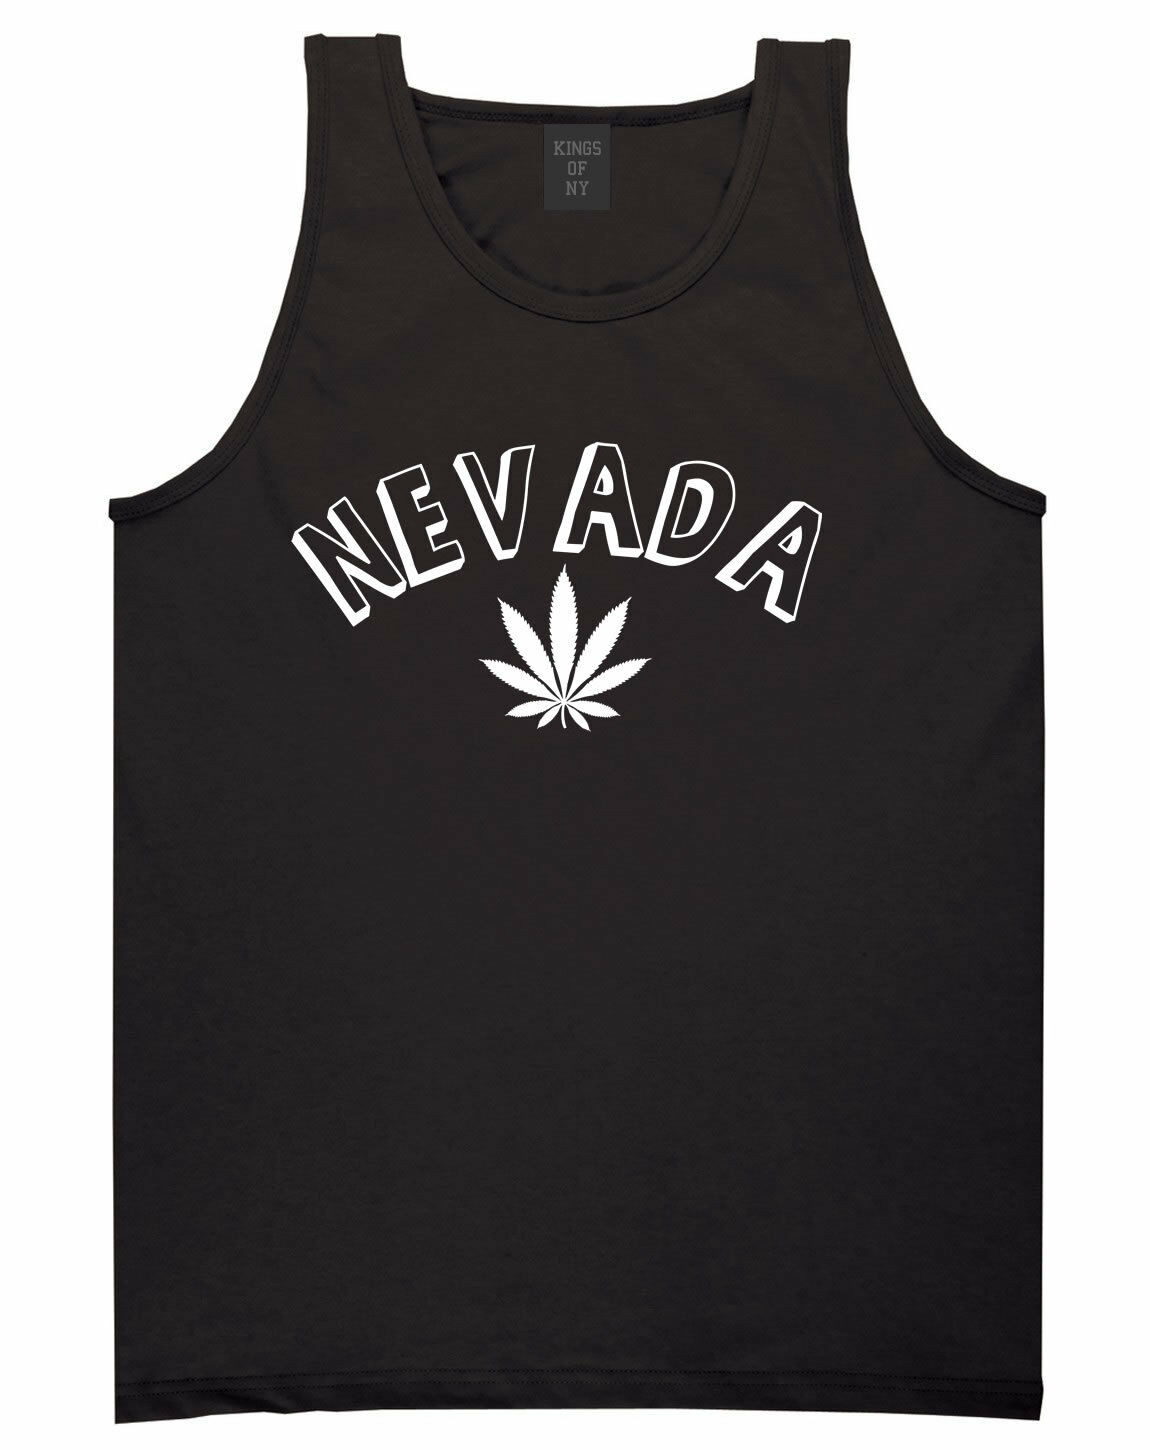 Marijuana Weed Nevada USA State NV Tank Top T-Shirt 1